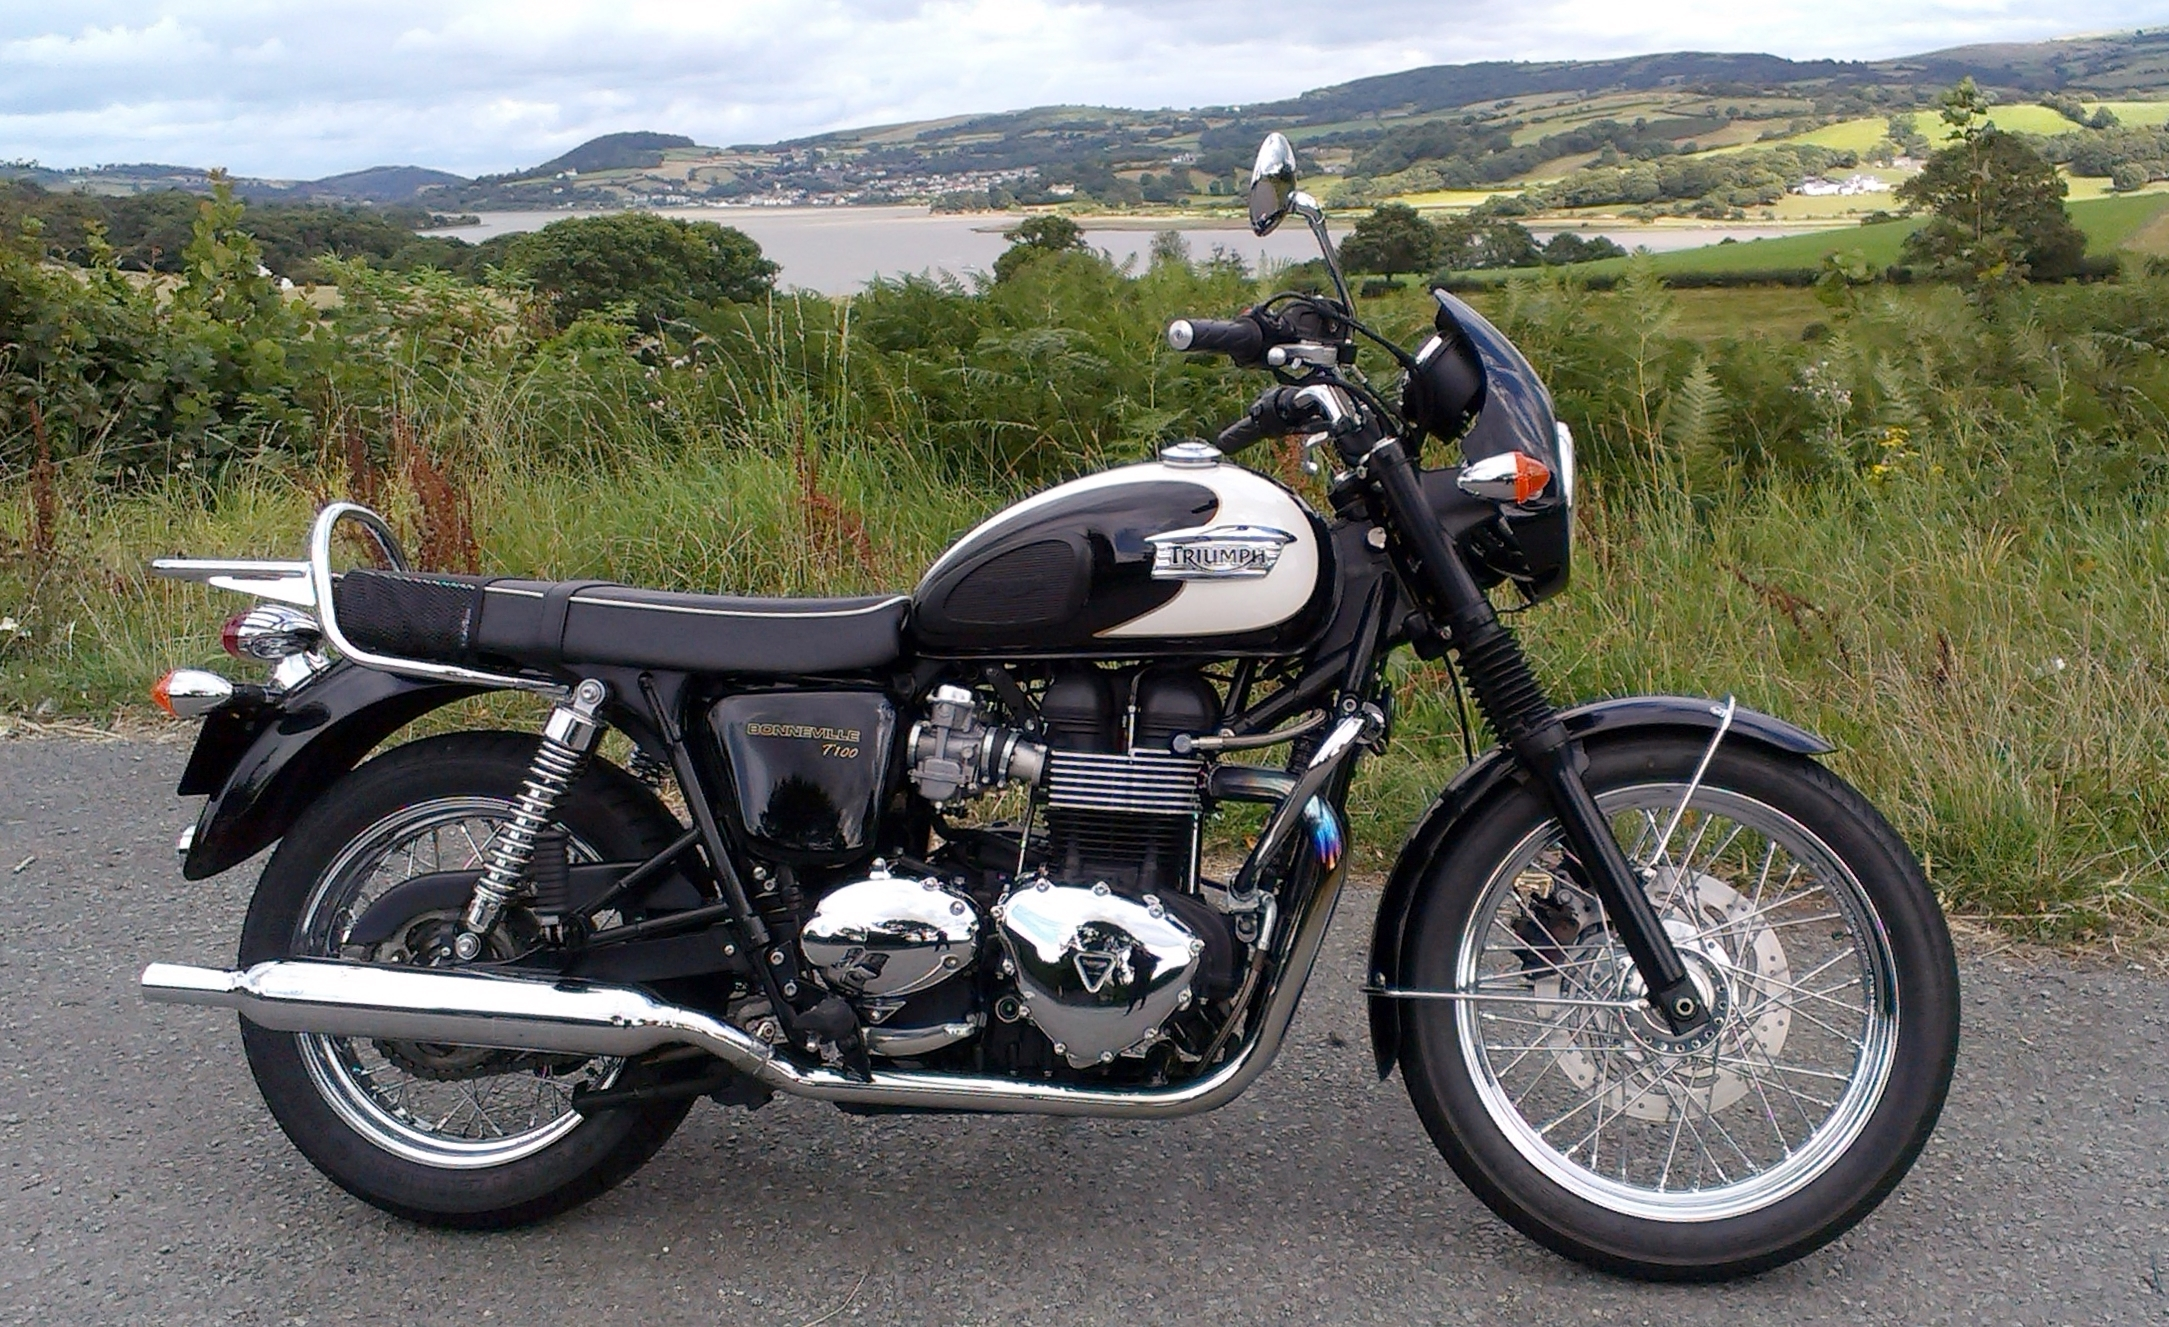 Triumph bonneville t 100 single seat